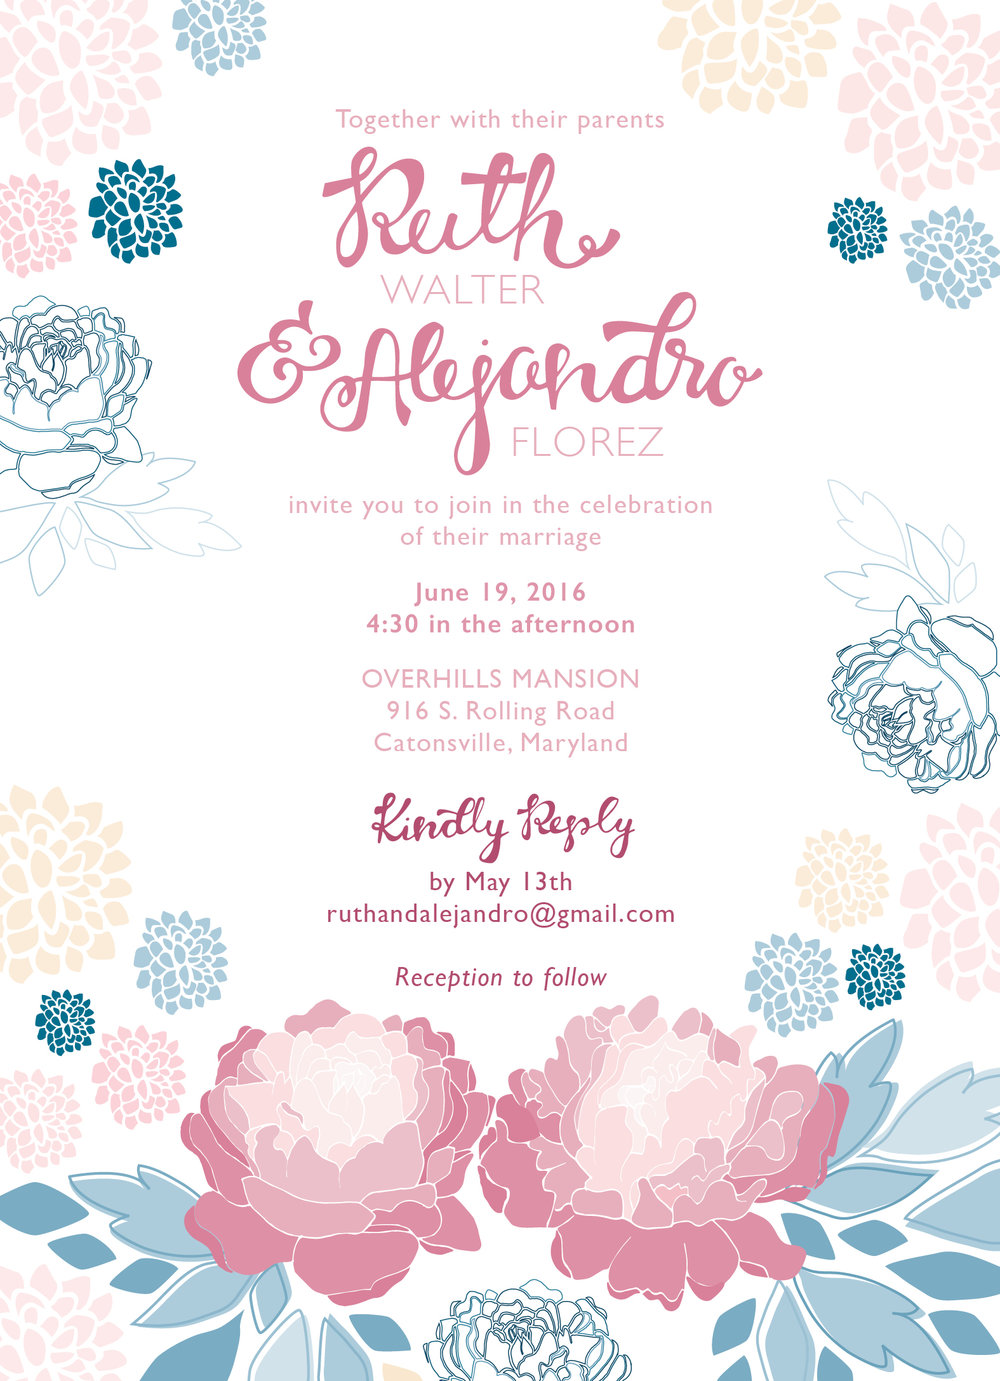 ruth-and-alejandro-invitations-web.jpg